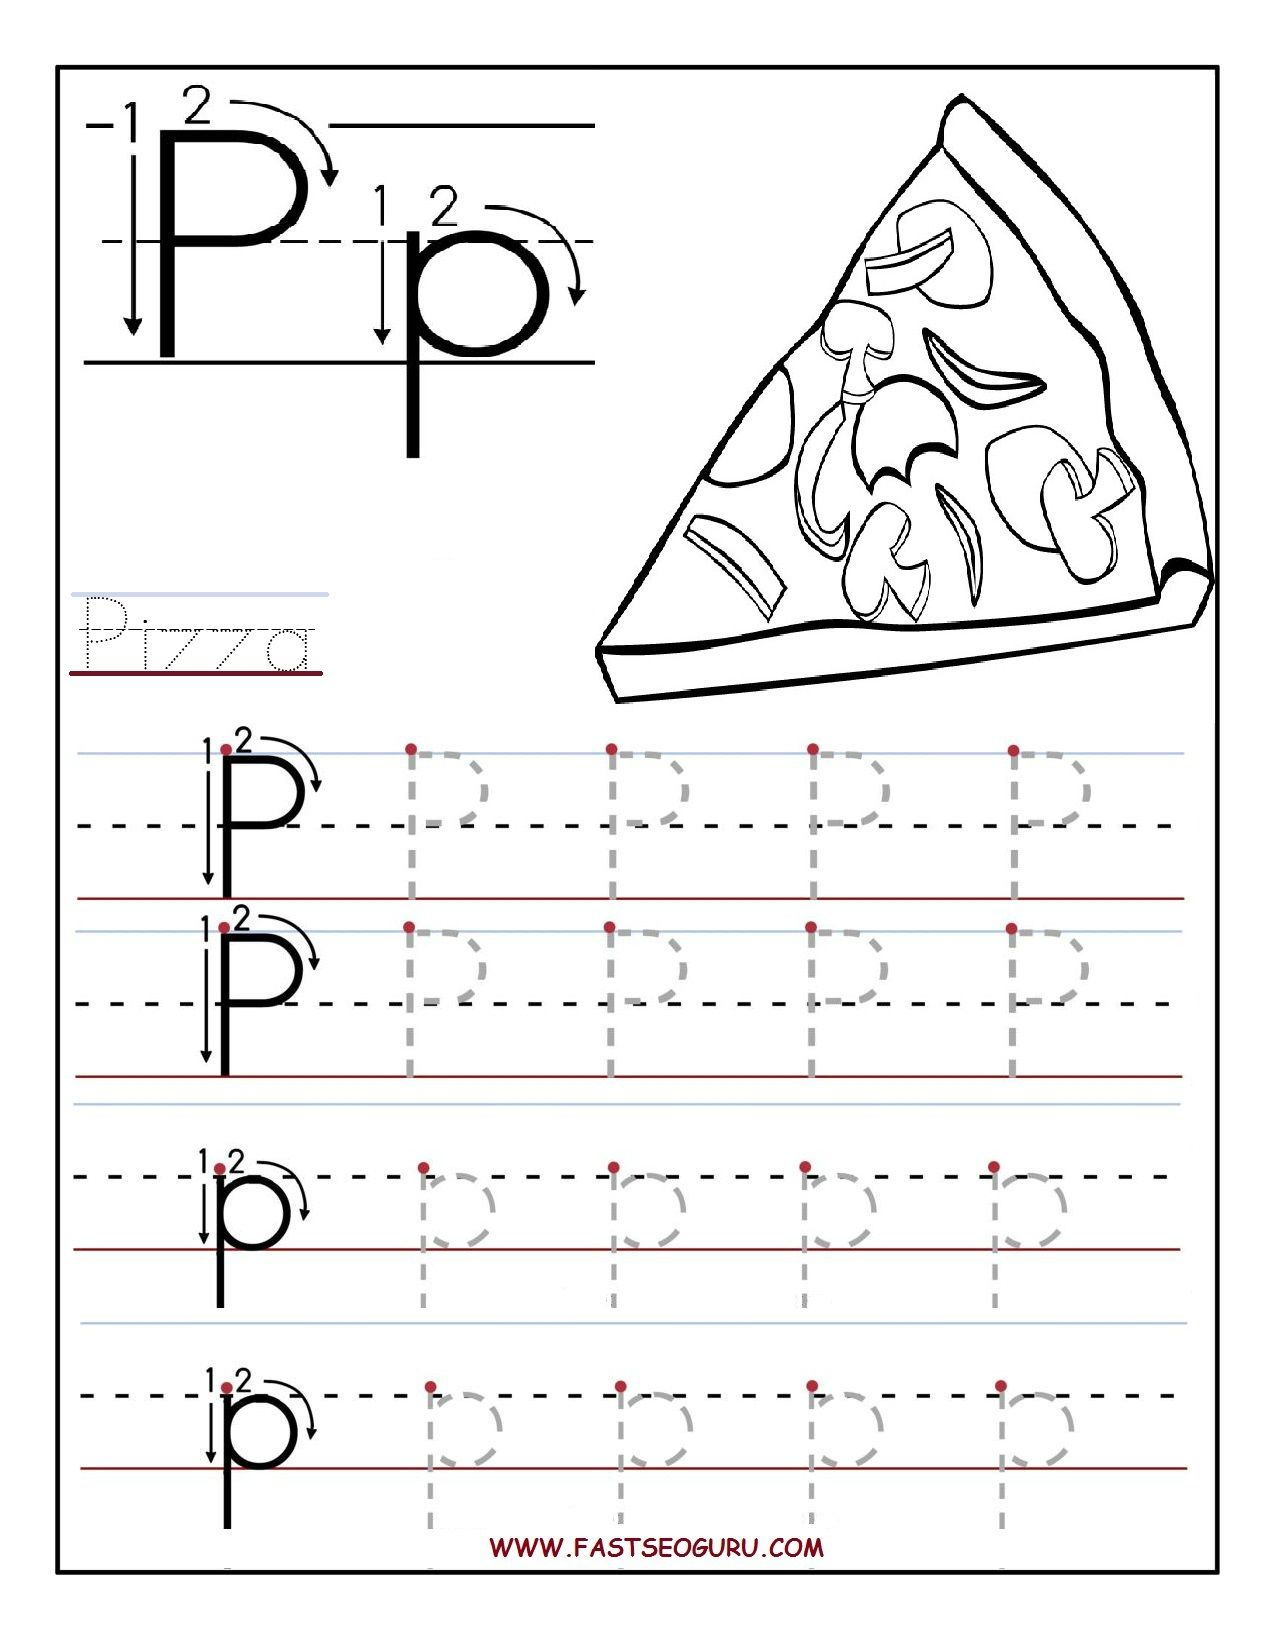 Letter P Tracing And Coloring Worksheets For Preschool